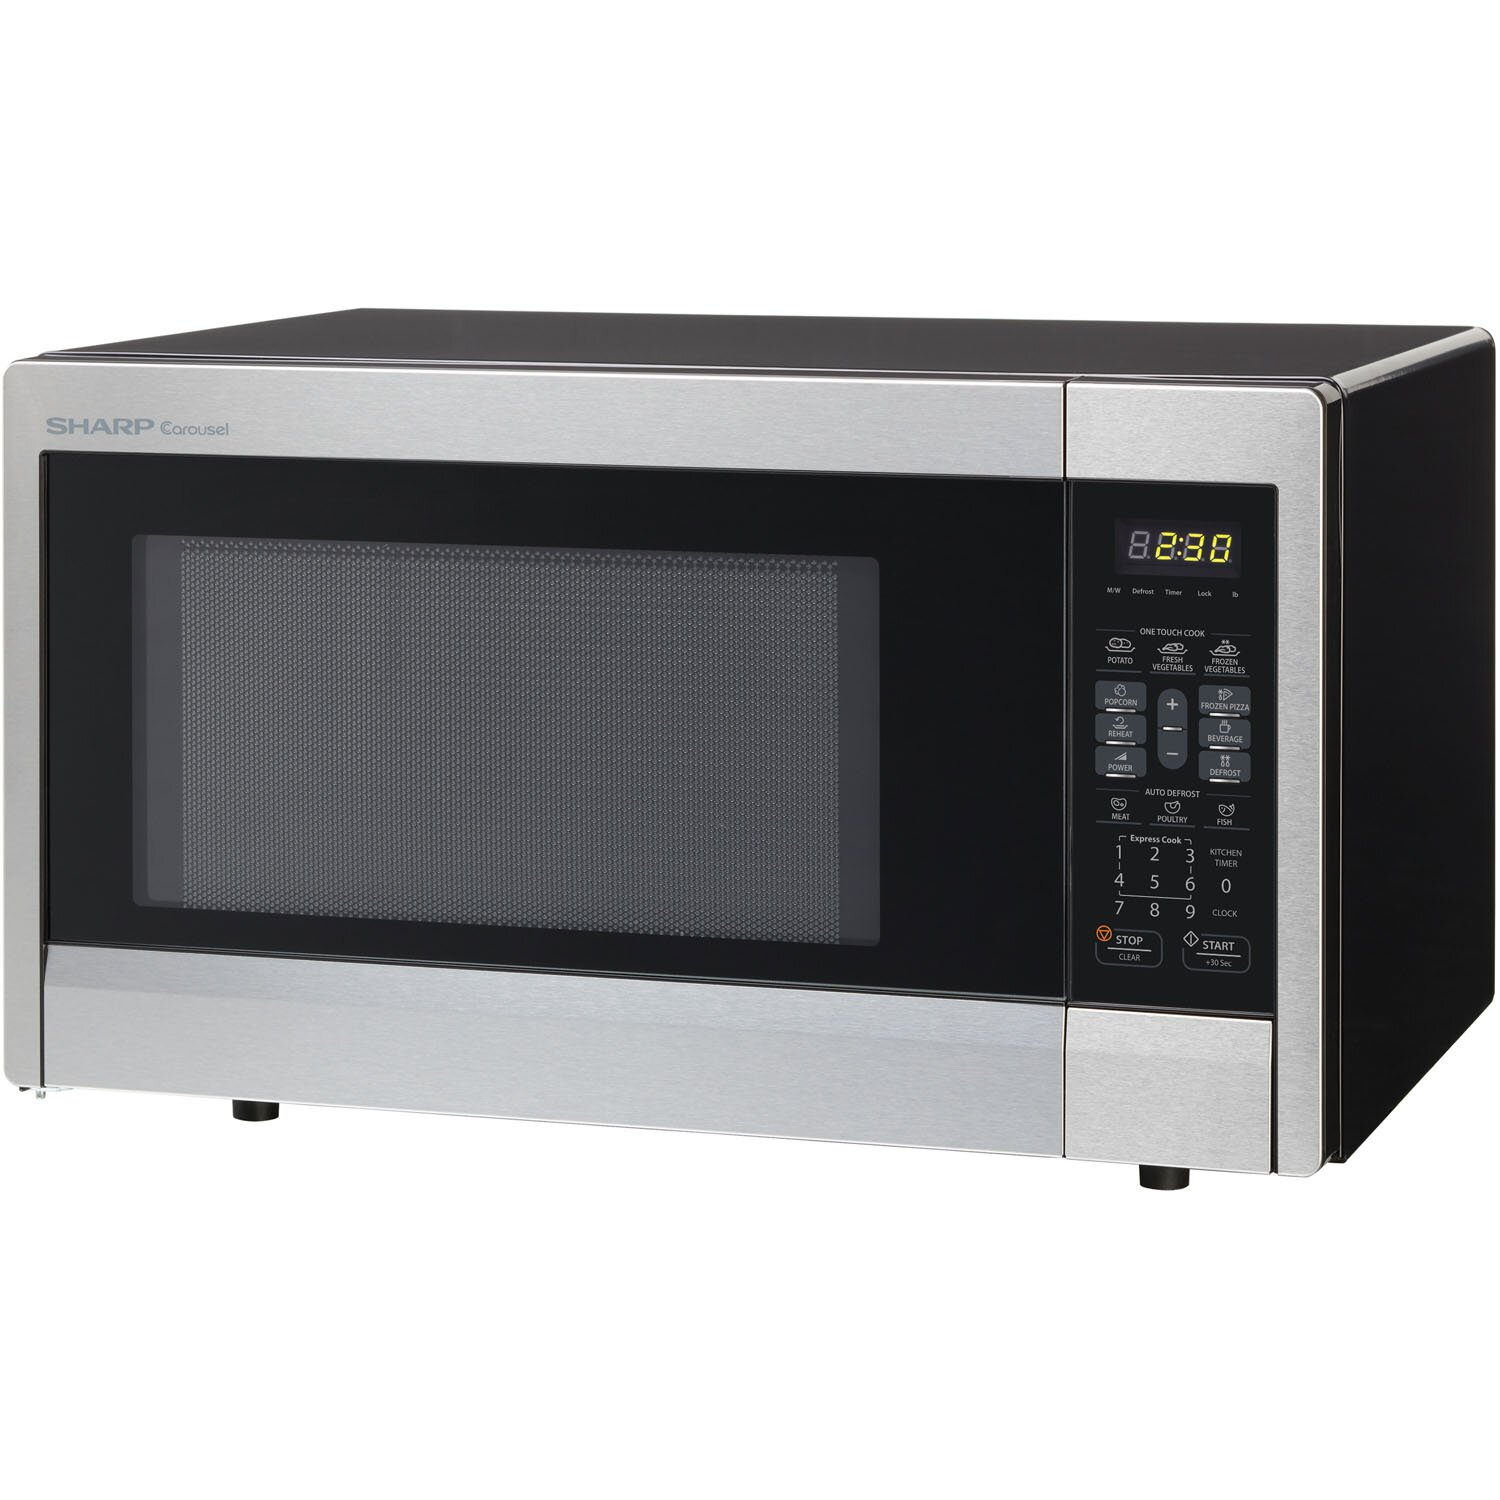 First Countertop Microwave : Sharp 1.1 Cu. Ft. 1000W Countertop Microwave & Reviews Wayfair